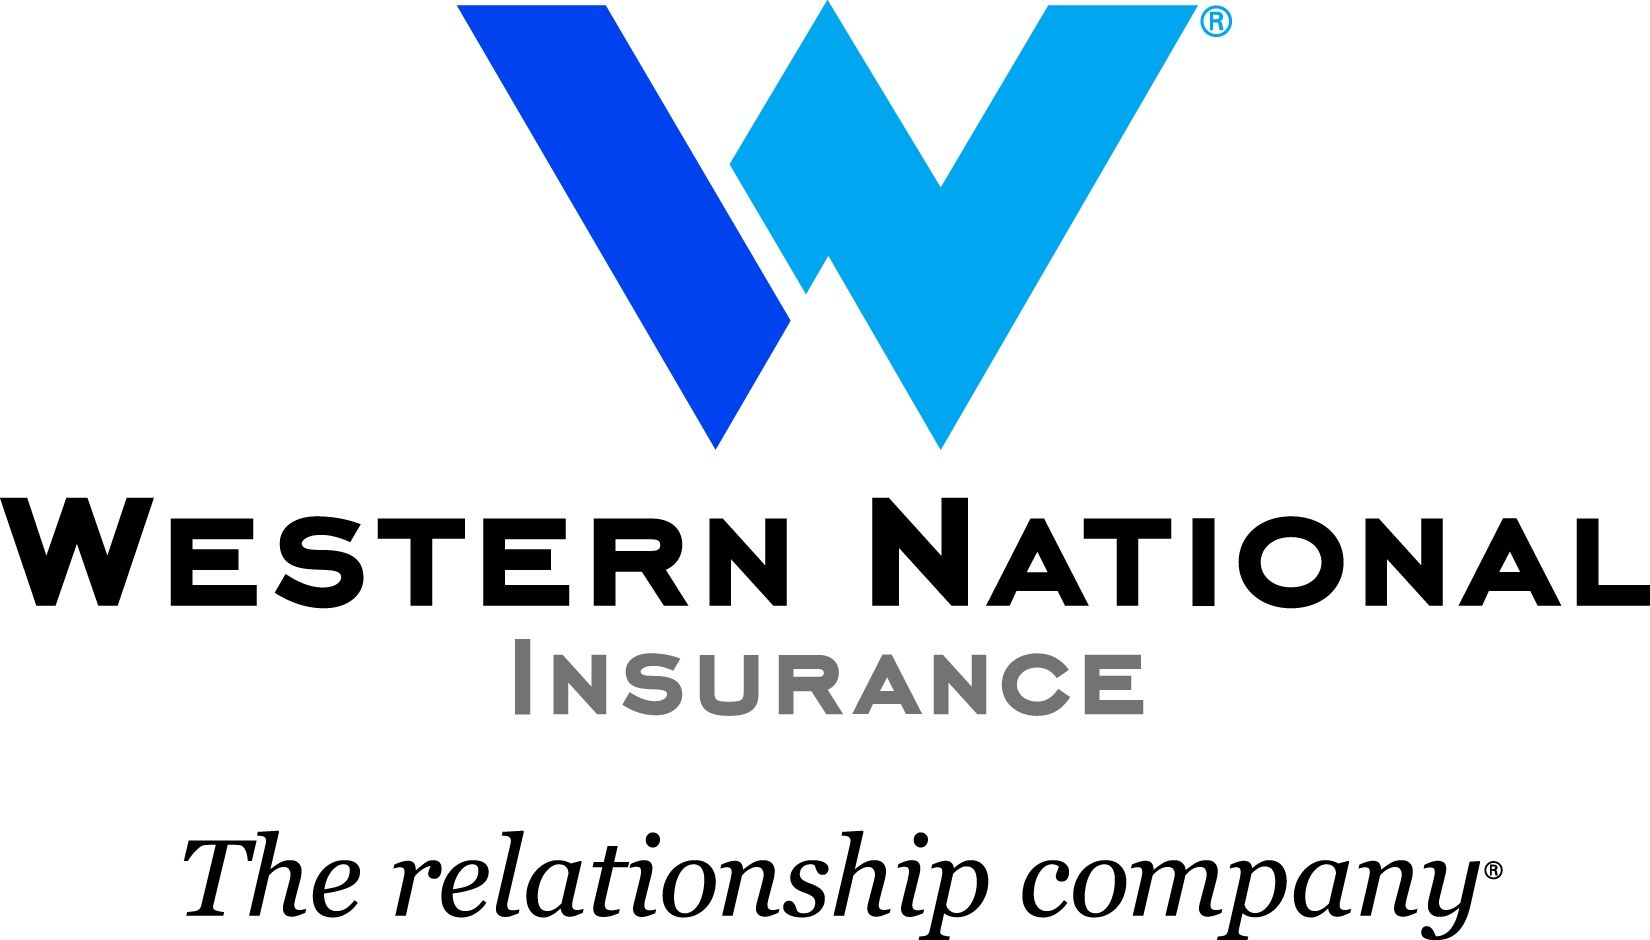 Western National Insurance Property Casualty Bonding National